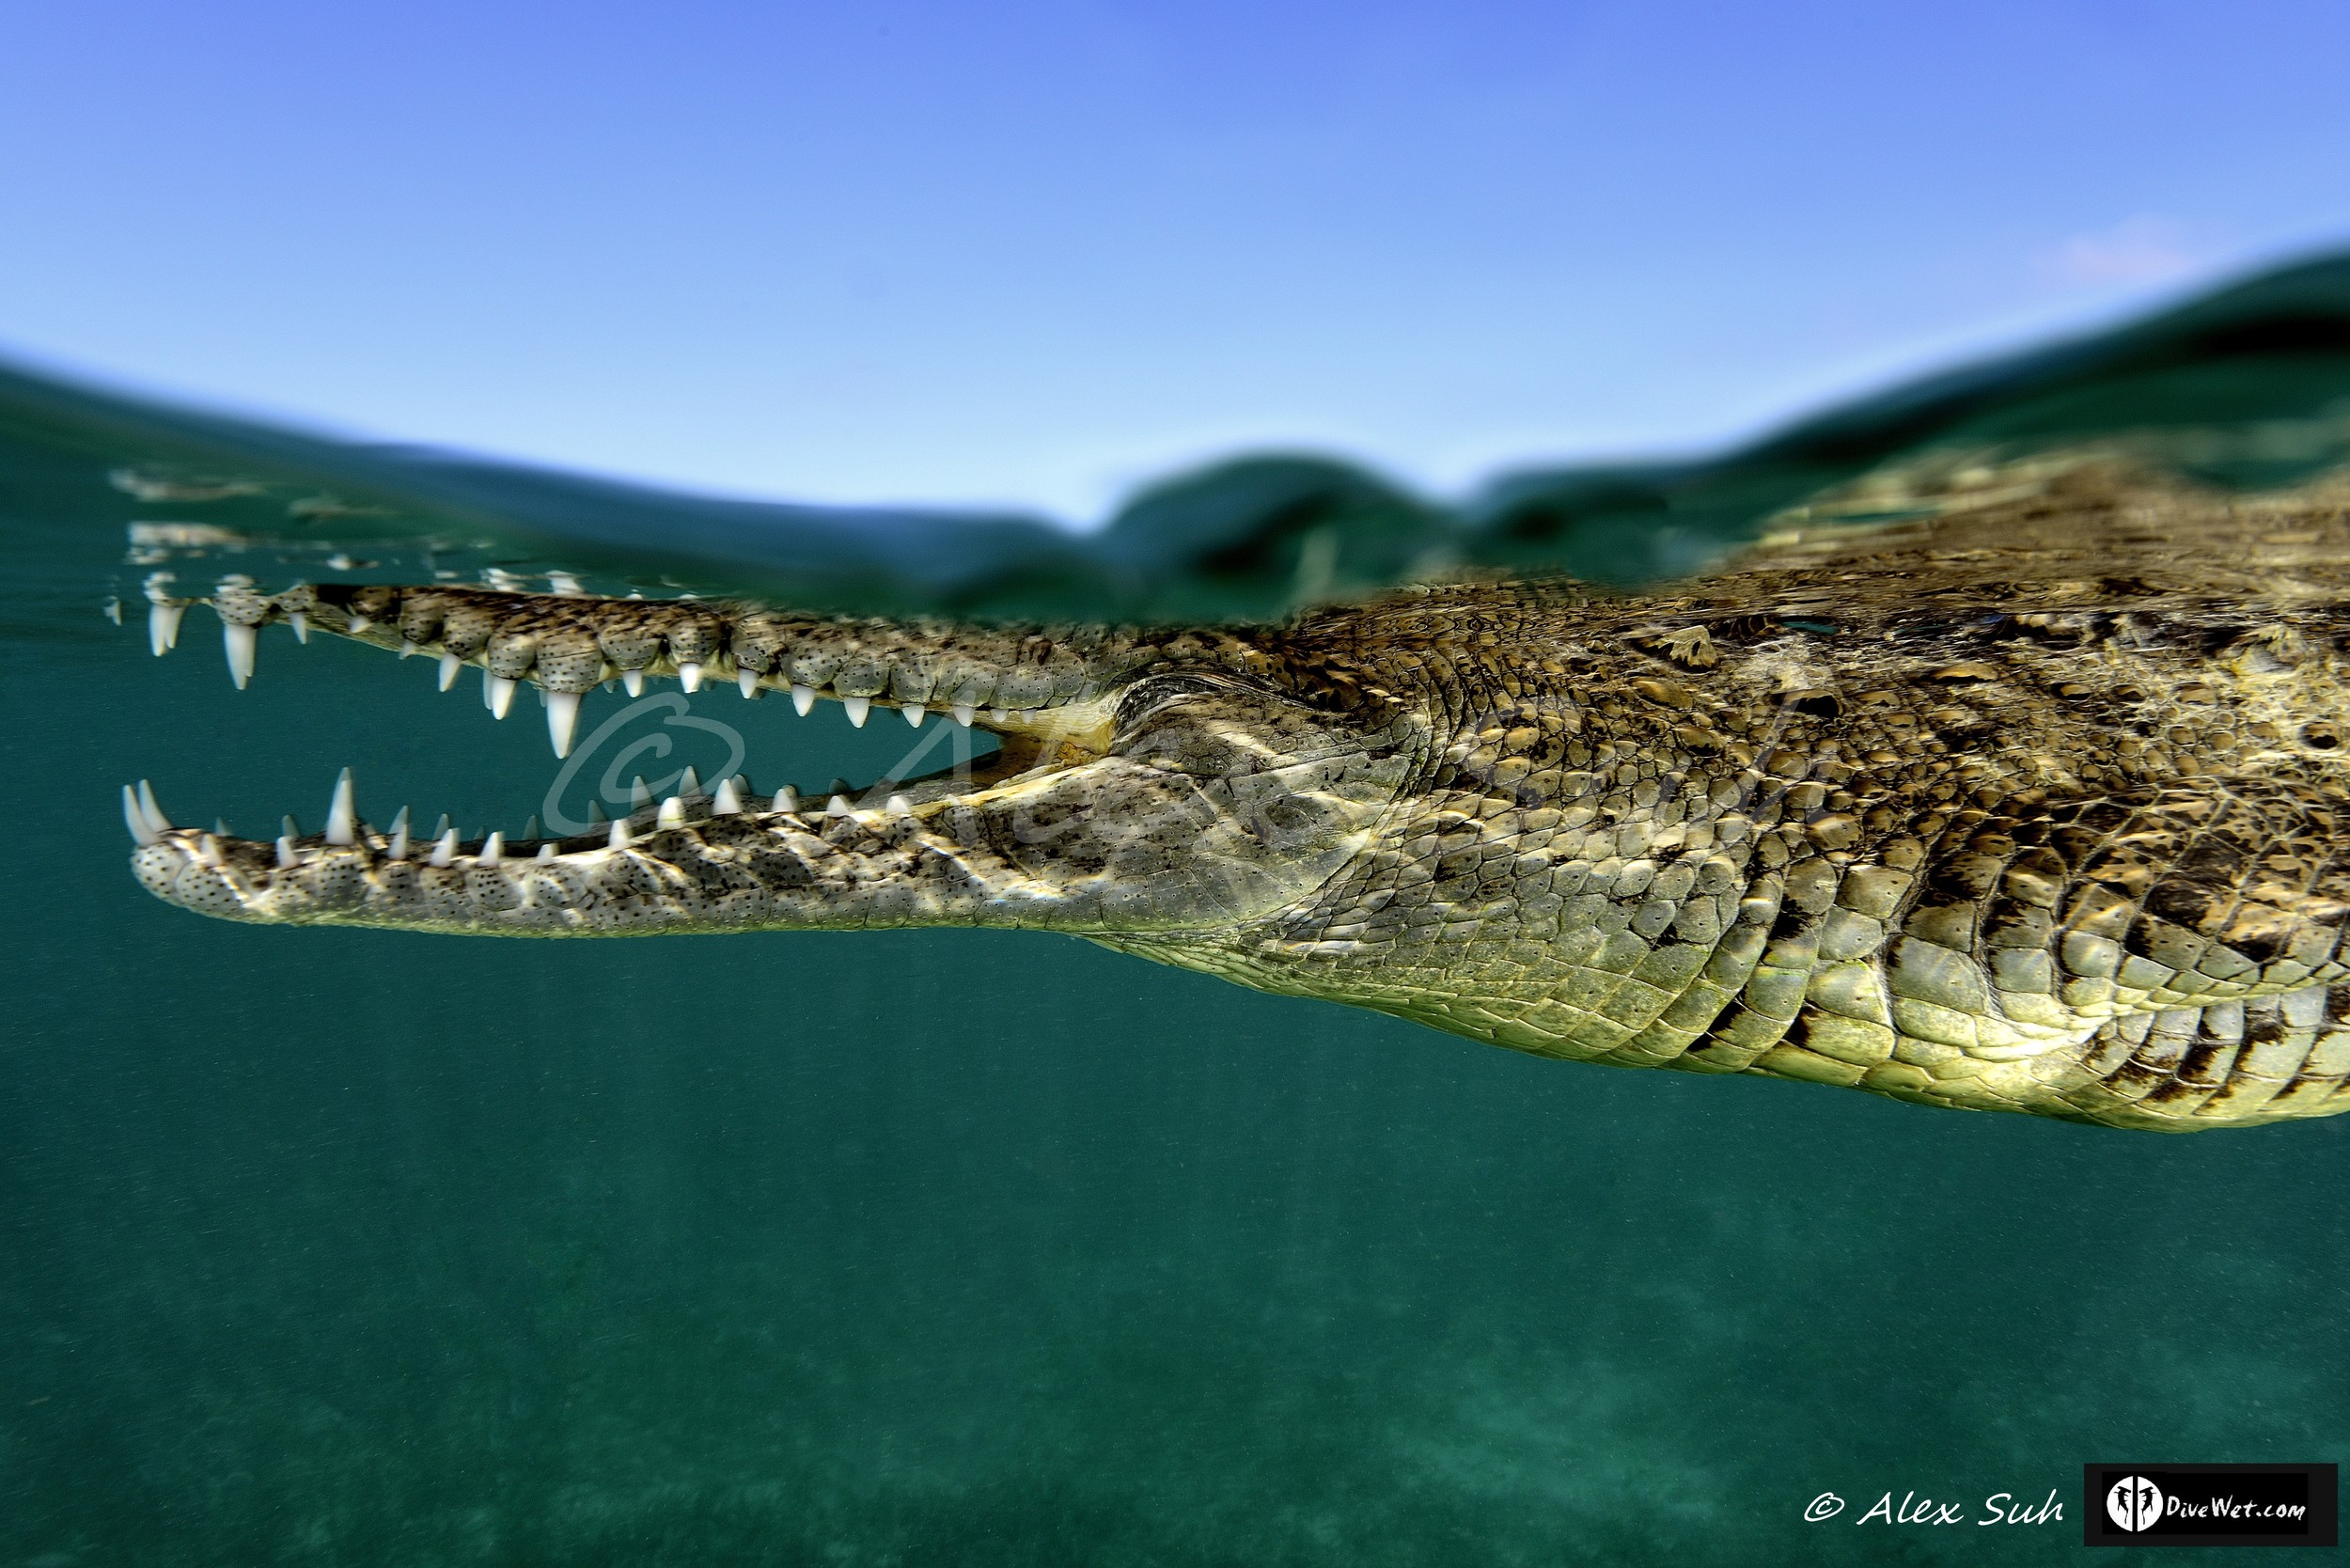 Over Under of American Crocodile (Crocodylus acutus) Swimming pass me by inches